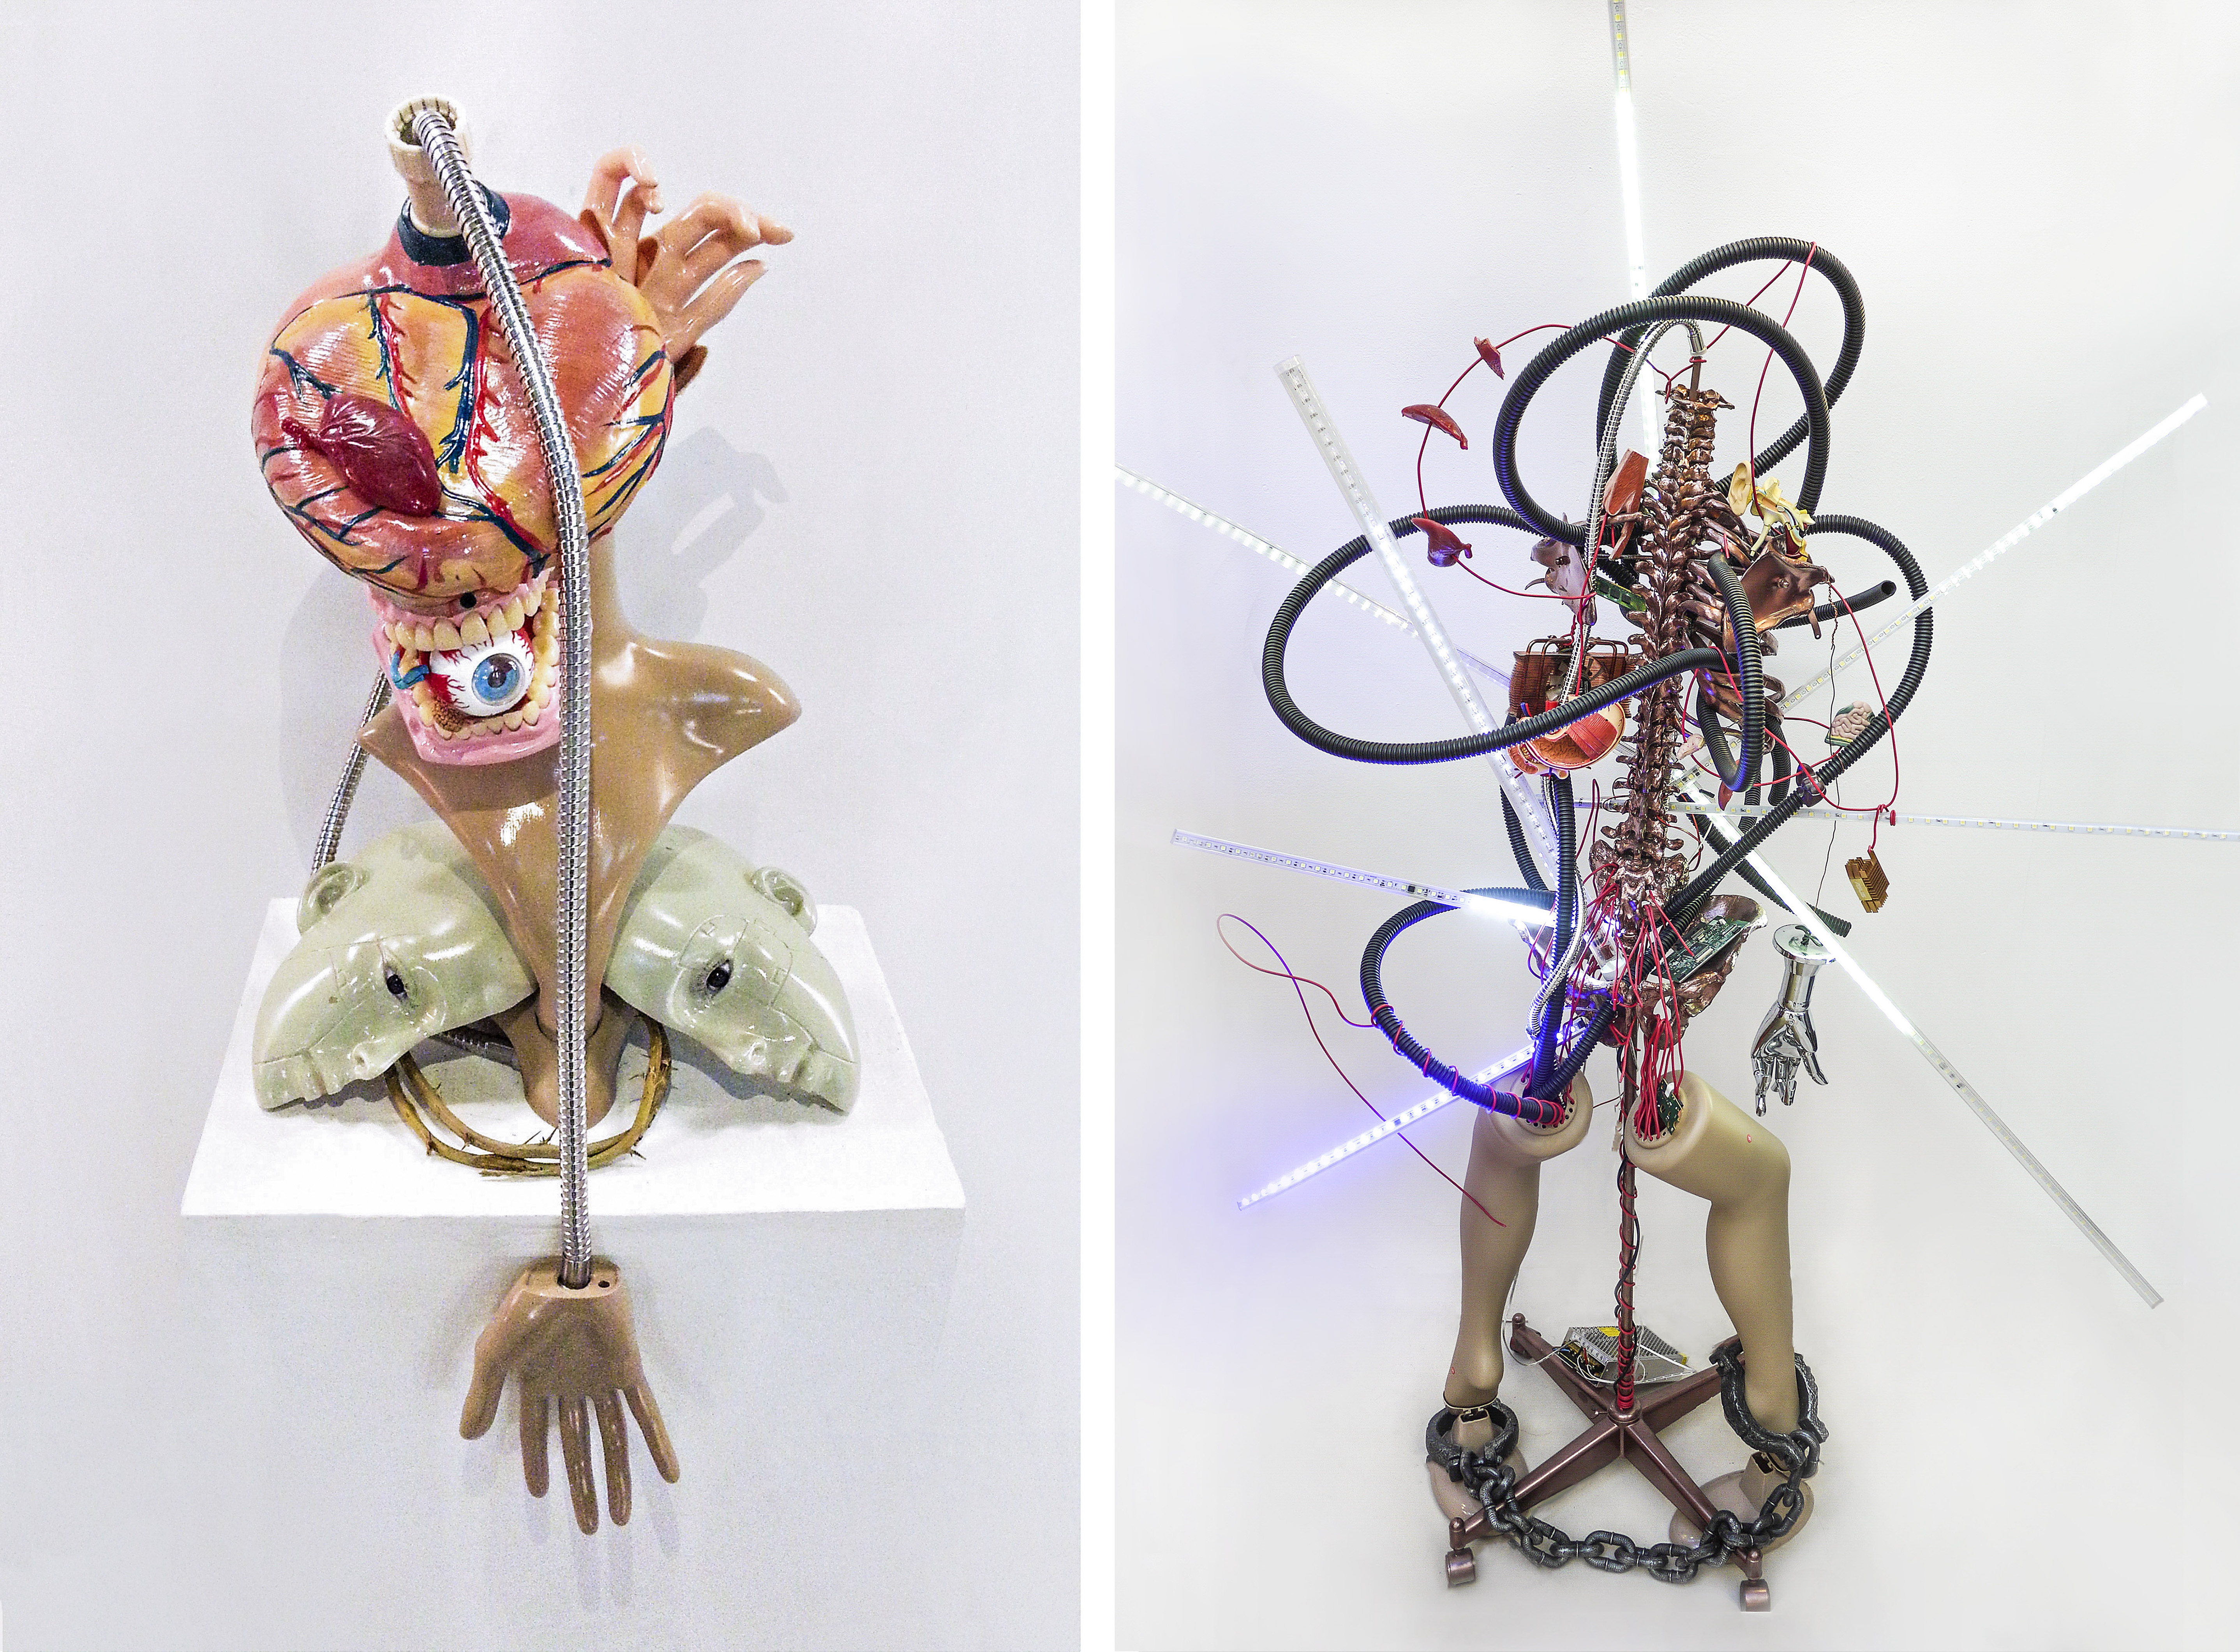 12 Homosacer1-1, Homosacer 4, dummy, anatomy model, motion sensor, dc-motor, wire, LED light, mixed media, 40x30x60(cm) 2015